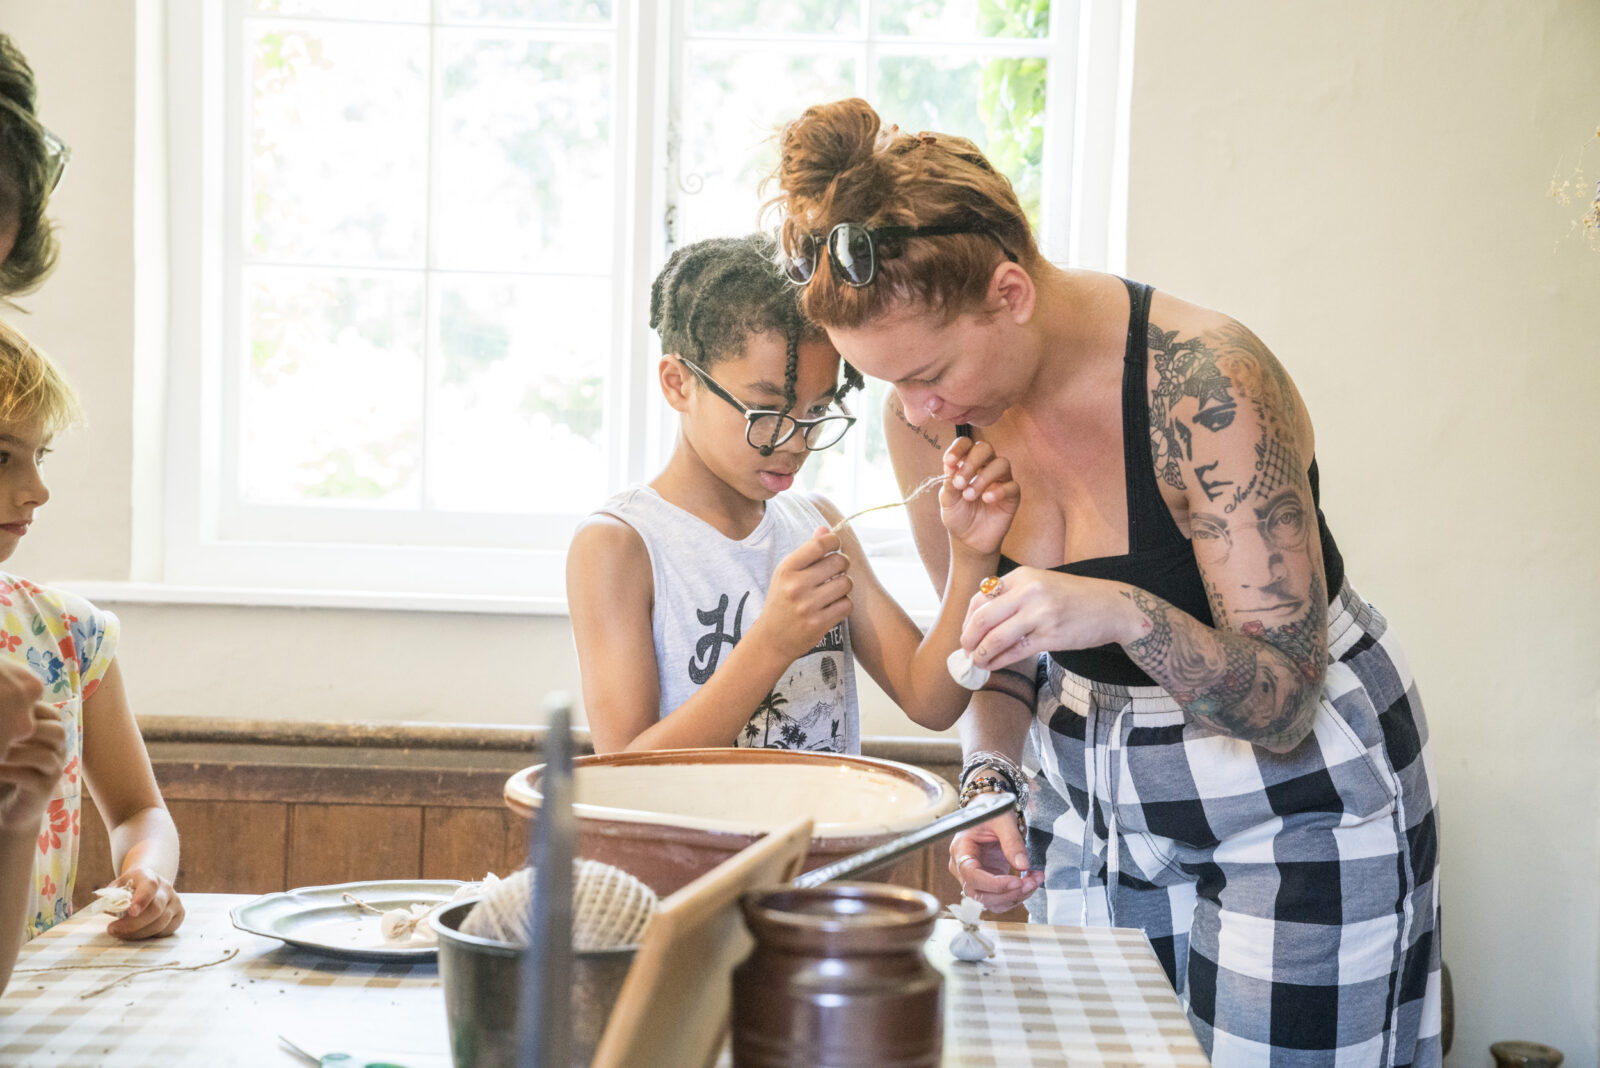 A child and his mother making lavender bags at Jane Austen's House